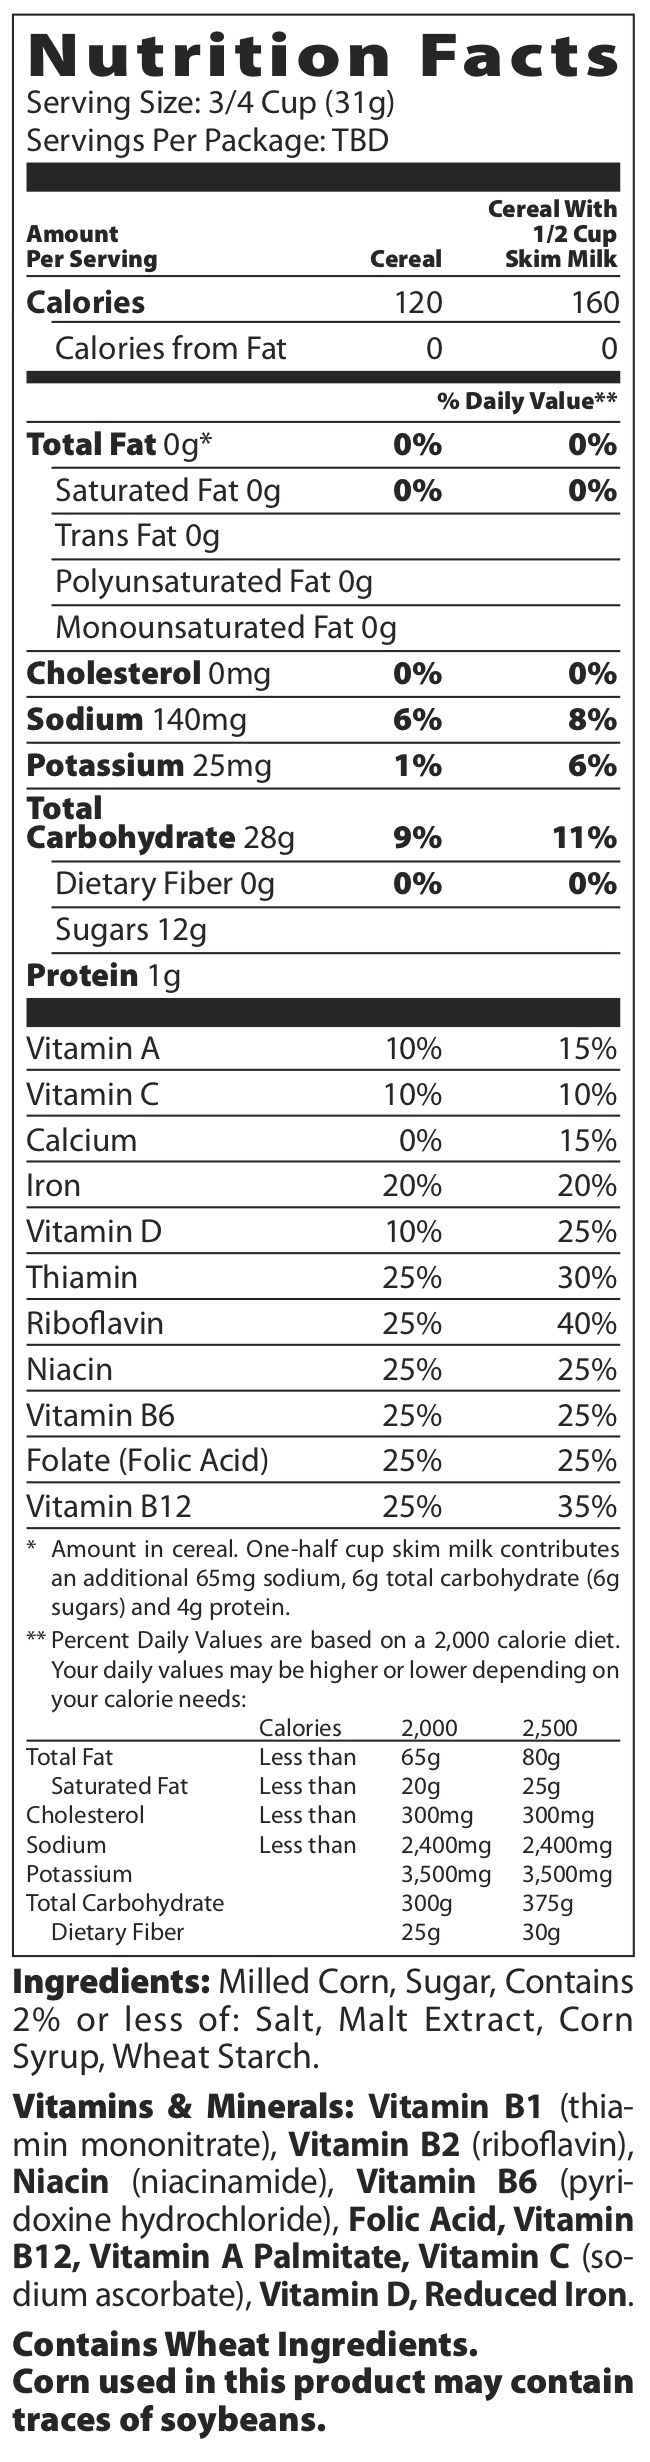 Nutrition Facts for Frosted Flakes